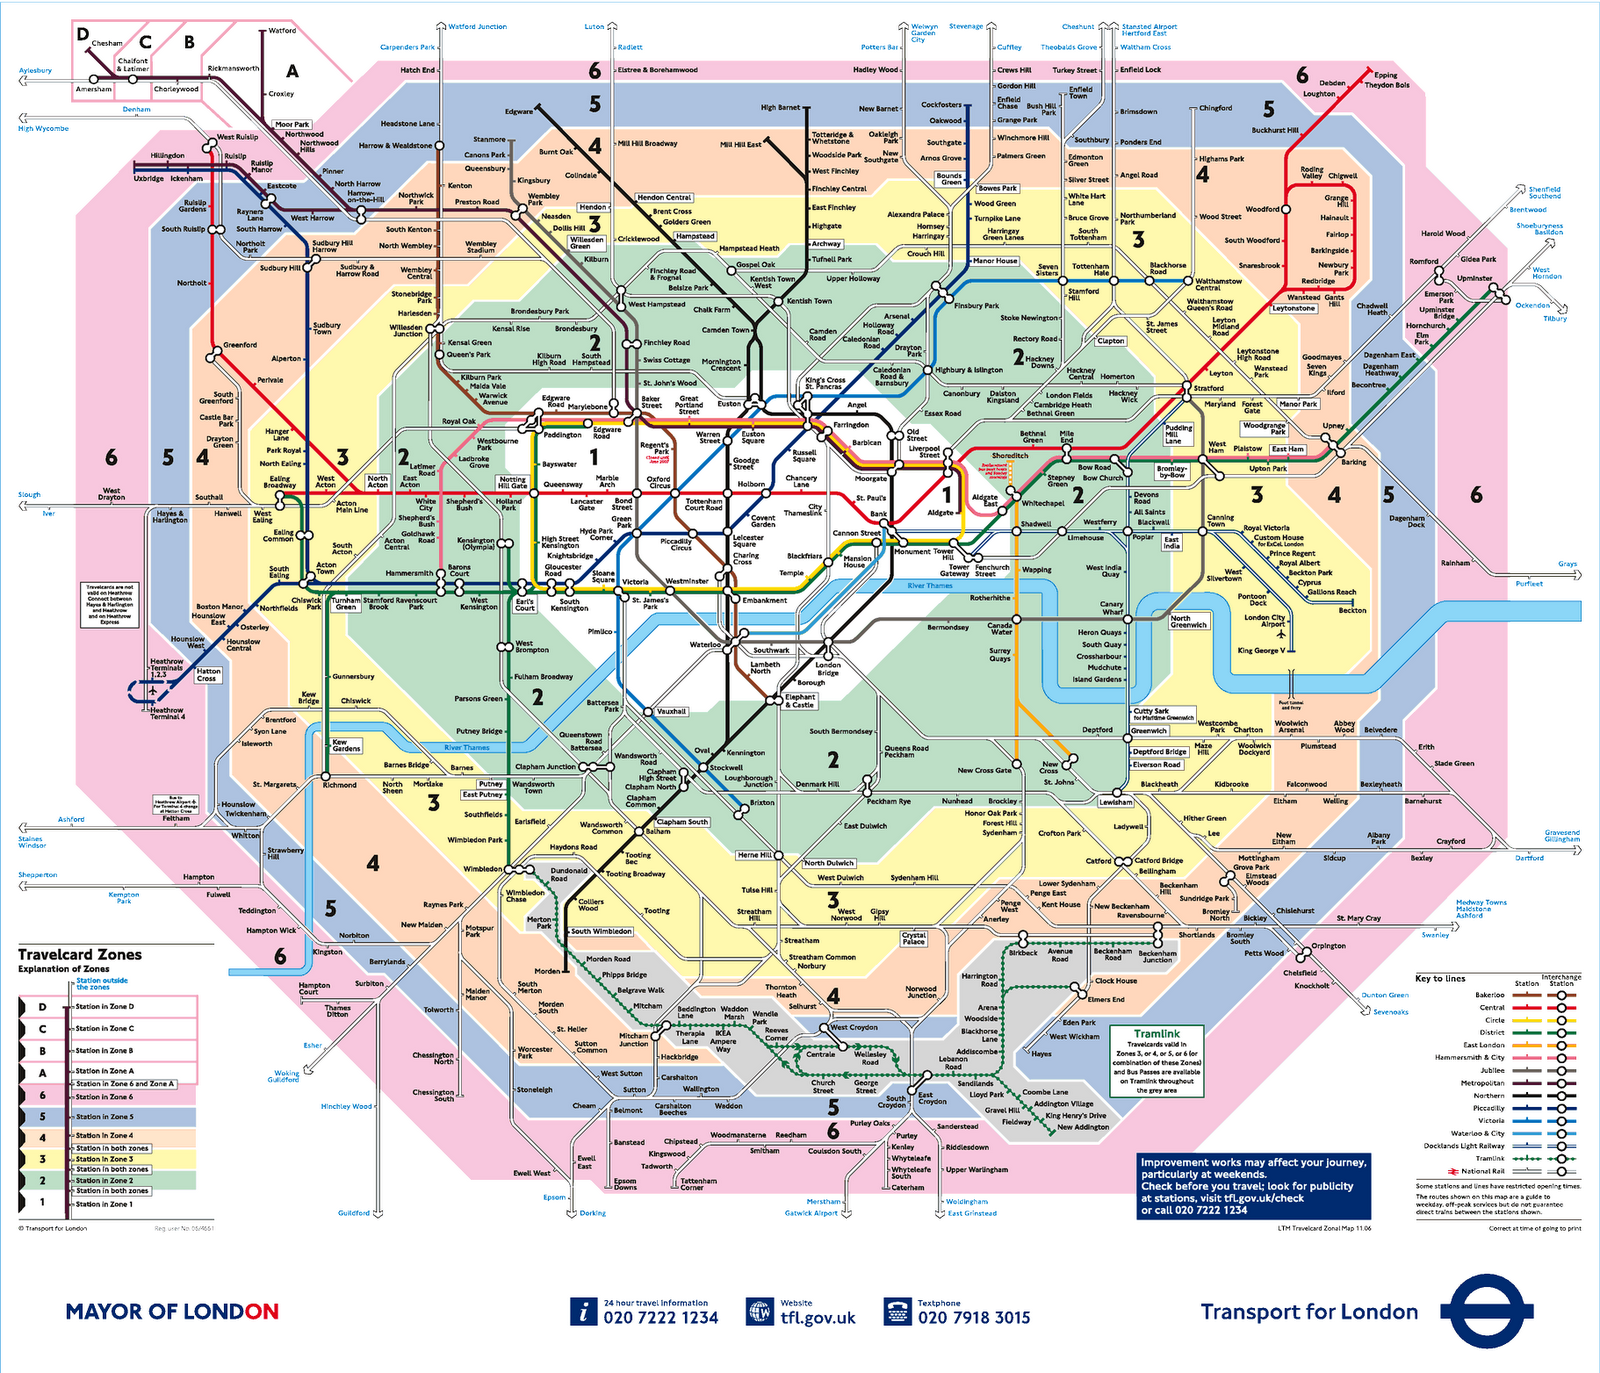 Tube Zones Map London Tube map | Places I've livedLondon in 2019 | London map